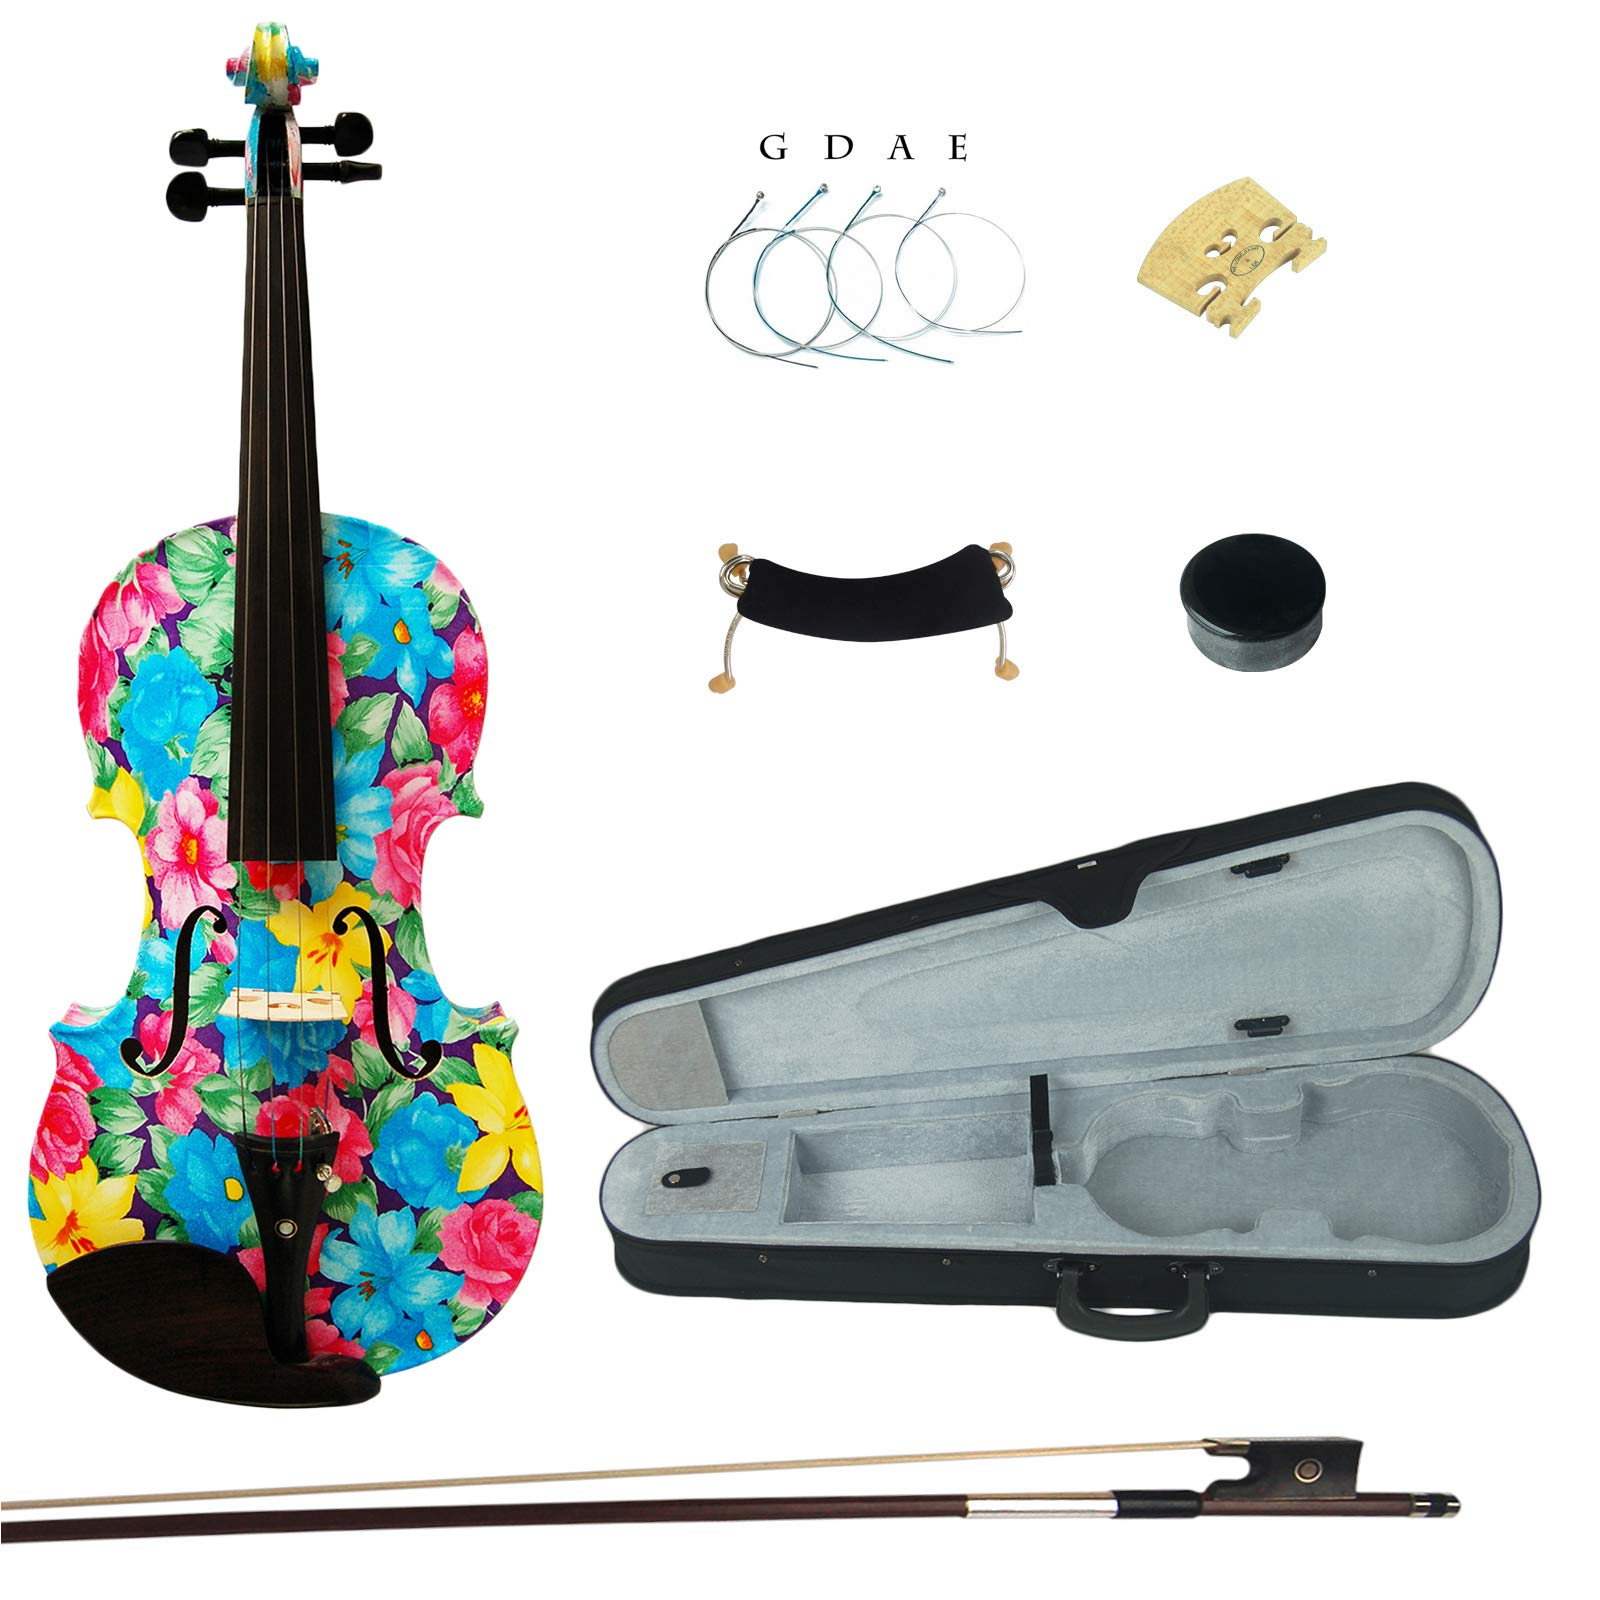 Kinglos 4/4 Blue Rose Flower Colored Ebony Fitted Solid Wood Violin Kit with Case, Shoulder Rest, Bow, Rosin, Extra Bridge and Strings Full Size (XC1002)